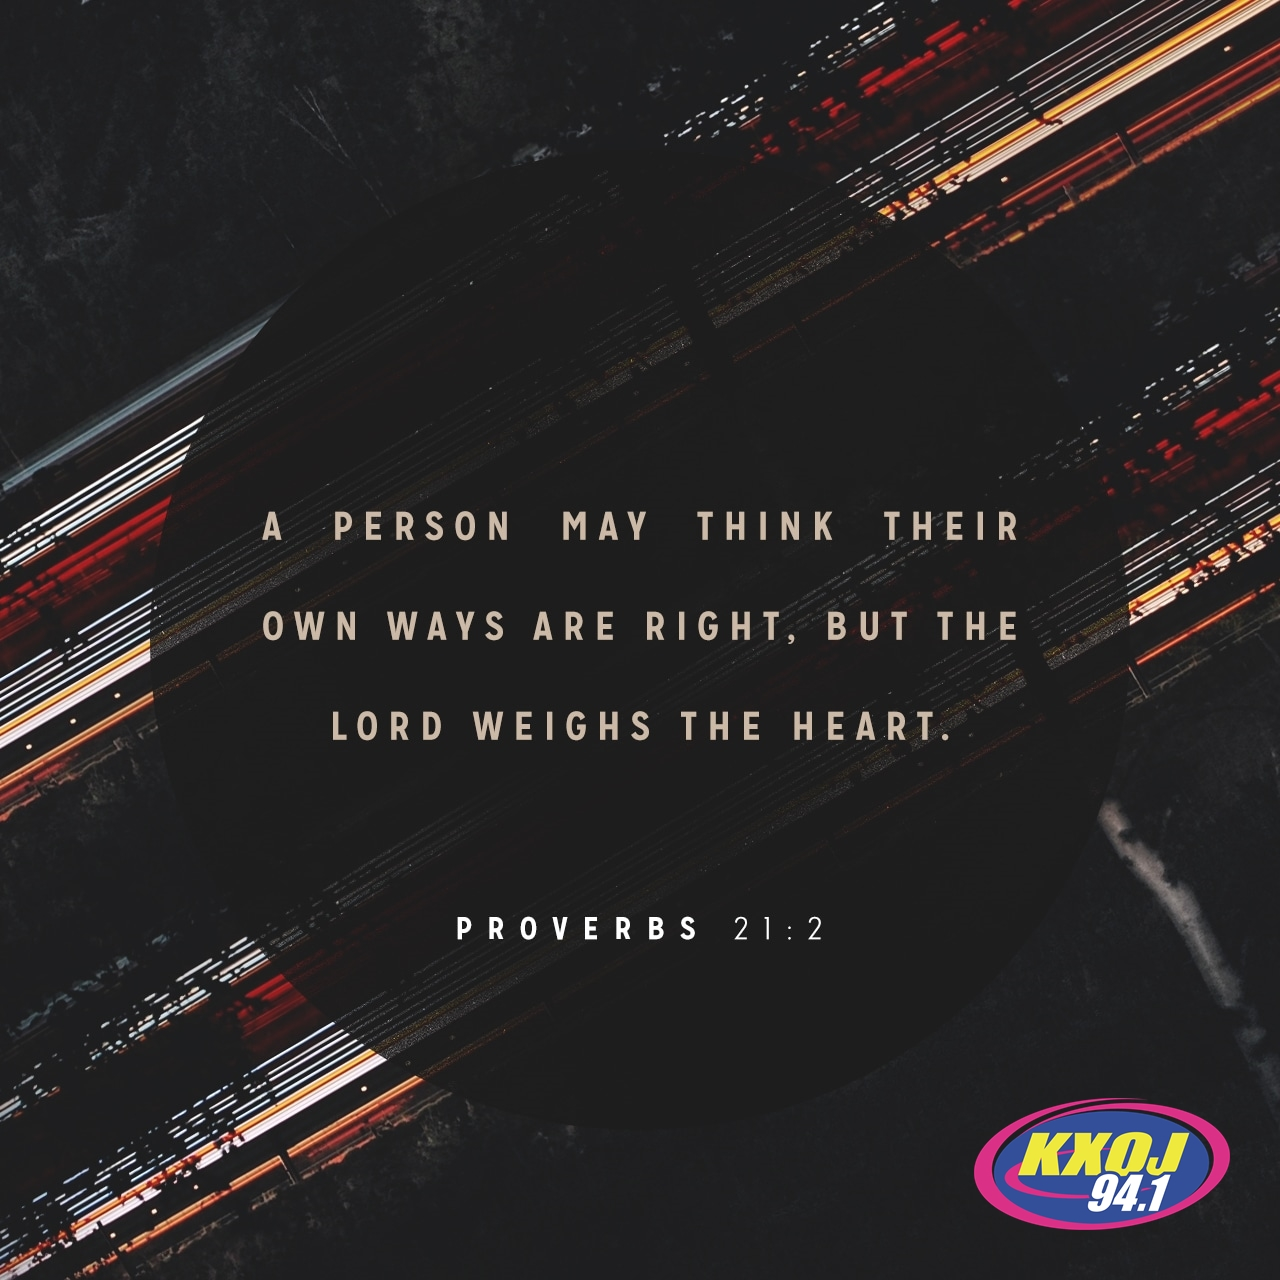 July 10th - Proverbs 21:2